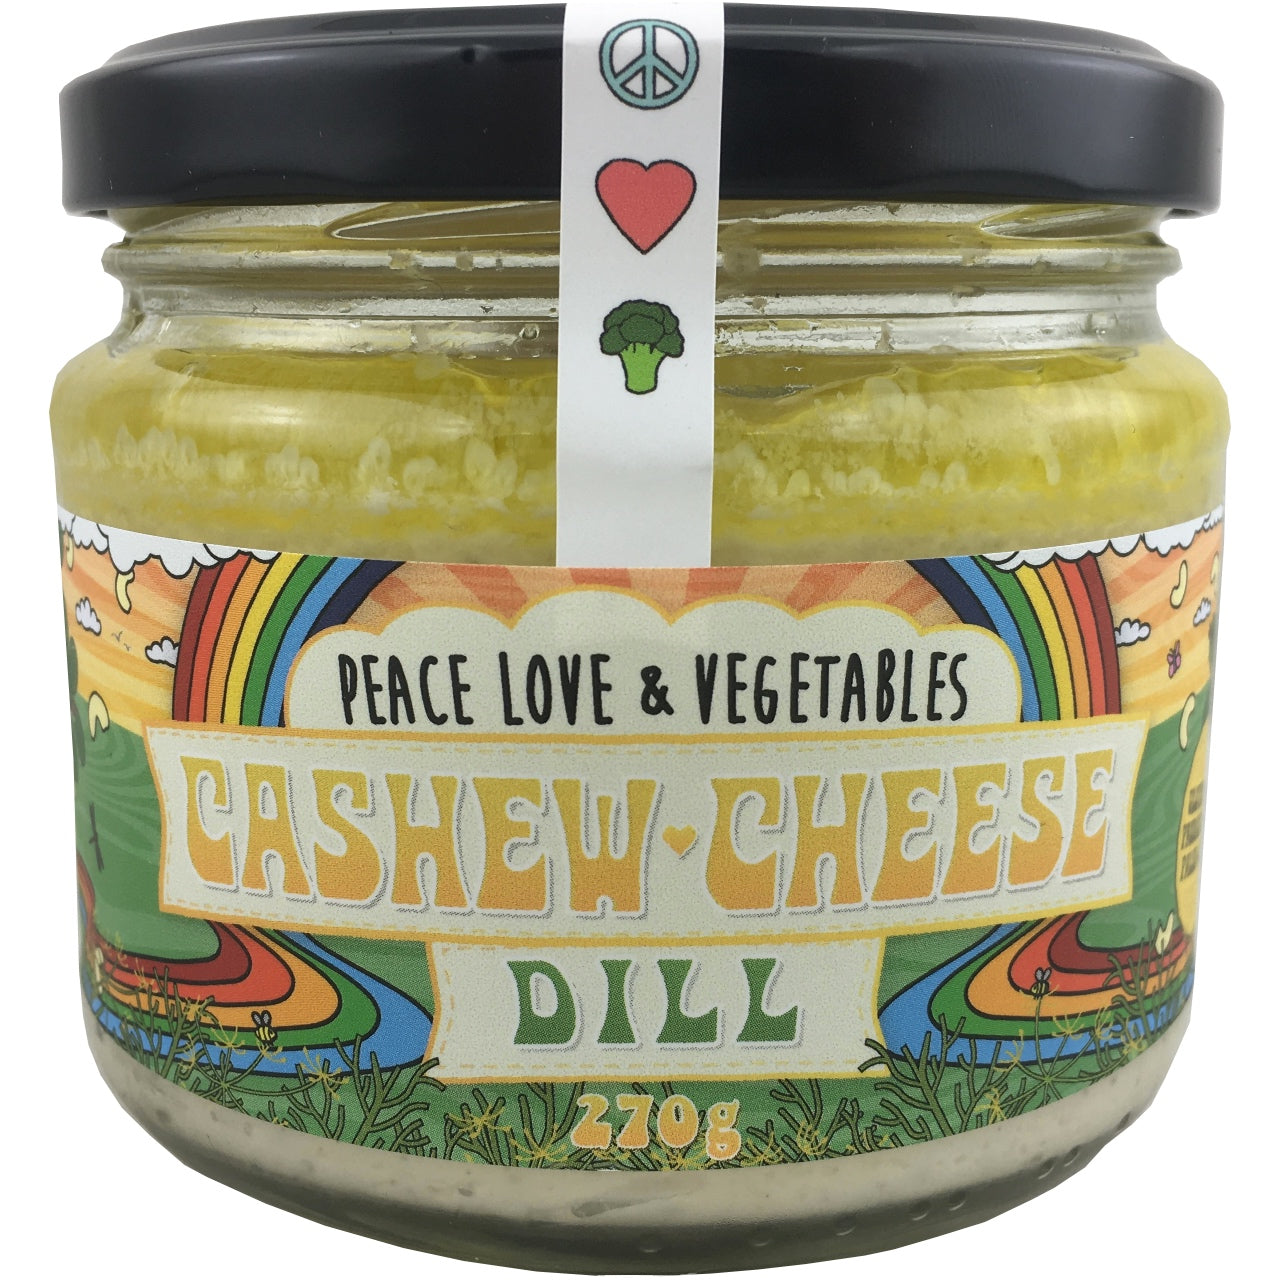 Peace Love & Vegetables Cashew Cheese